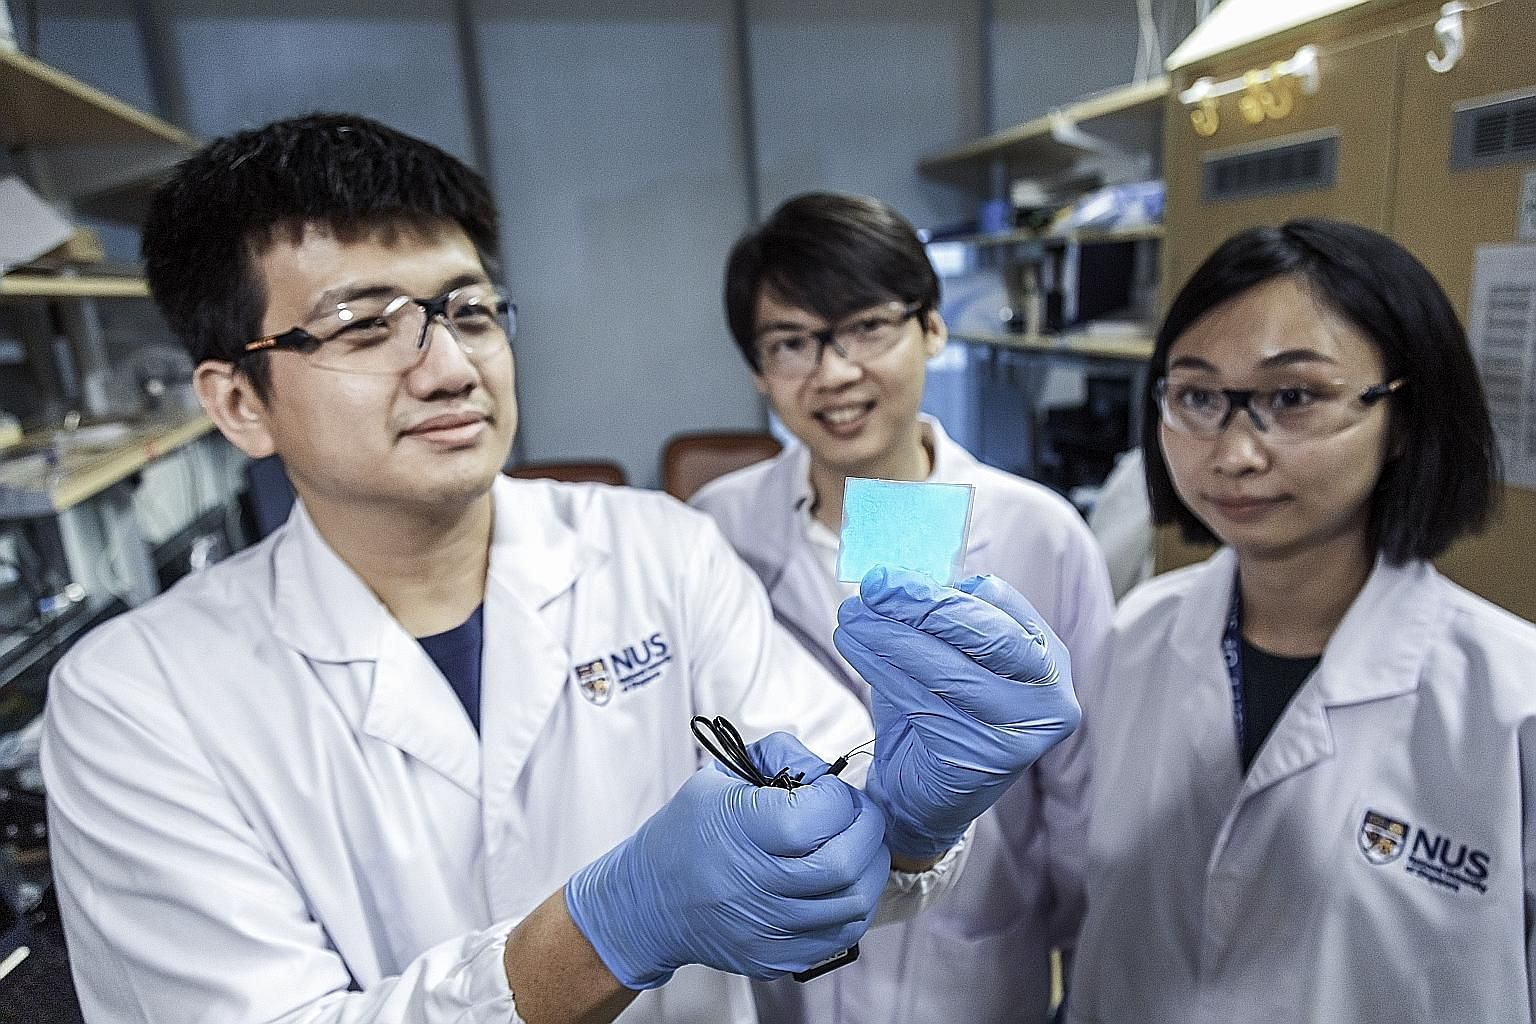 Assistant Professor Benjamin Tee (centre), who leads the NUS research team that is behind the supermaterial, with two team members - doctoral student Wang Guanxiang, who is holding up a sample of the new material, and research fellow Tan Yu Jun.